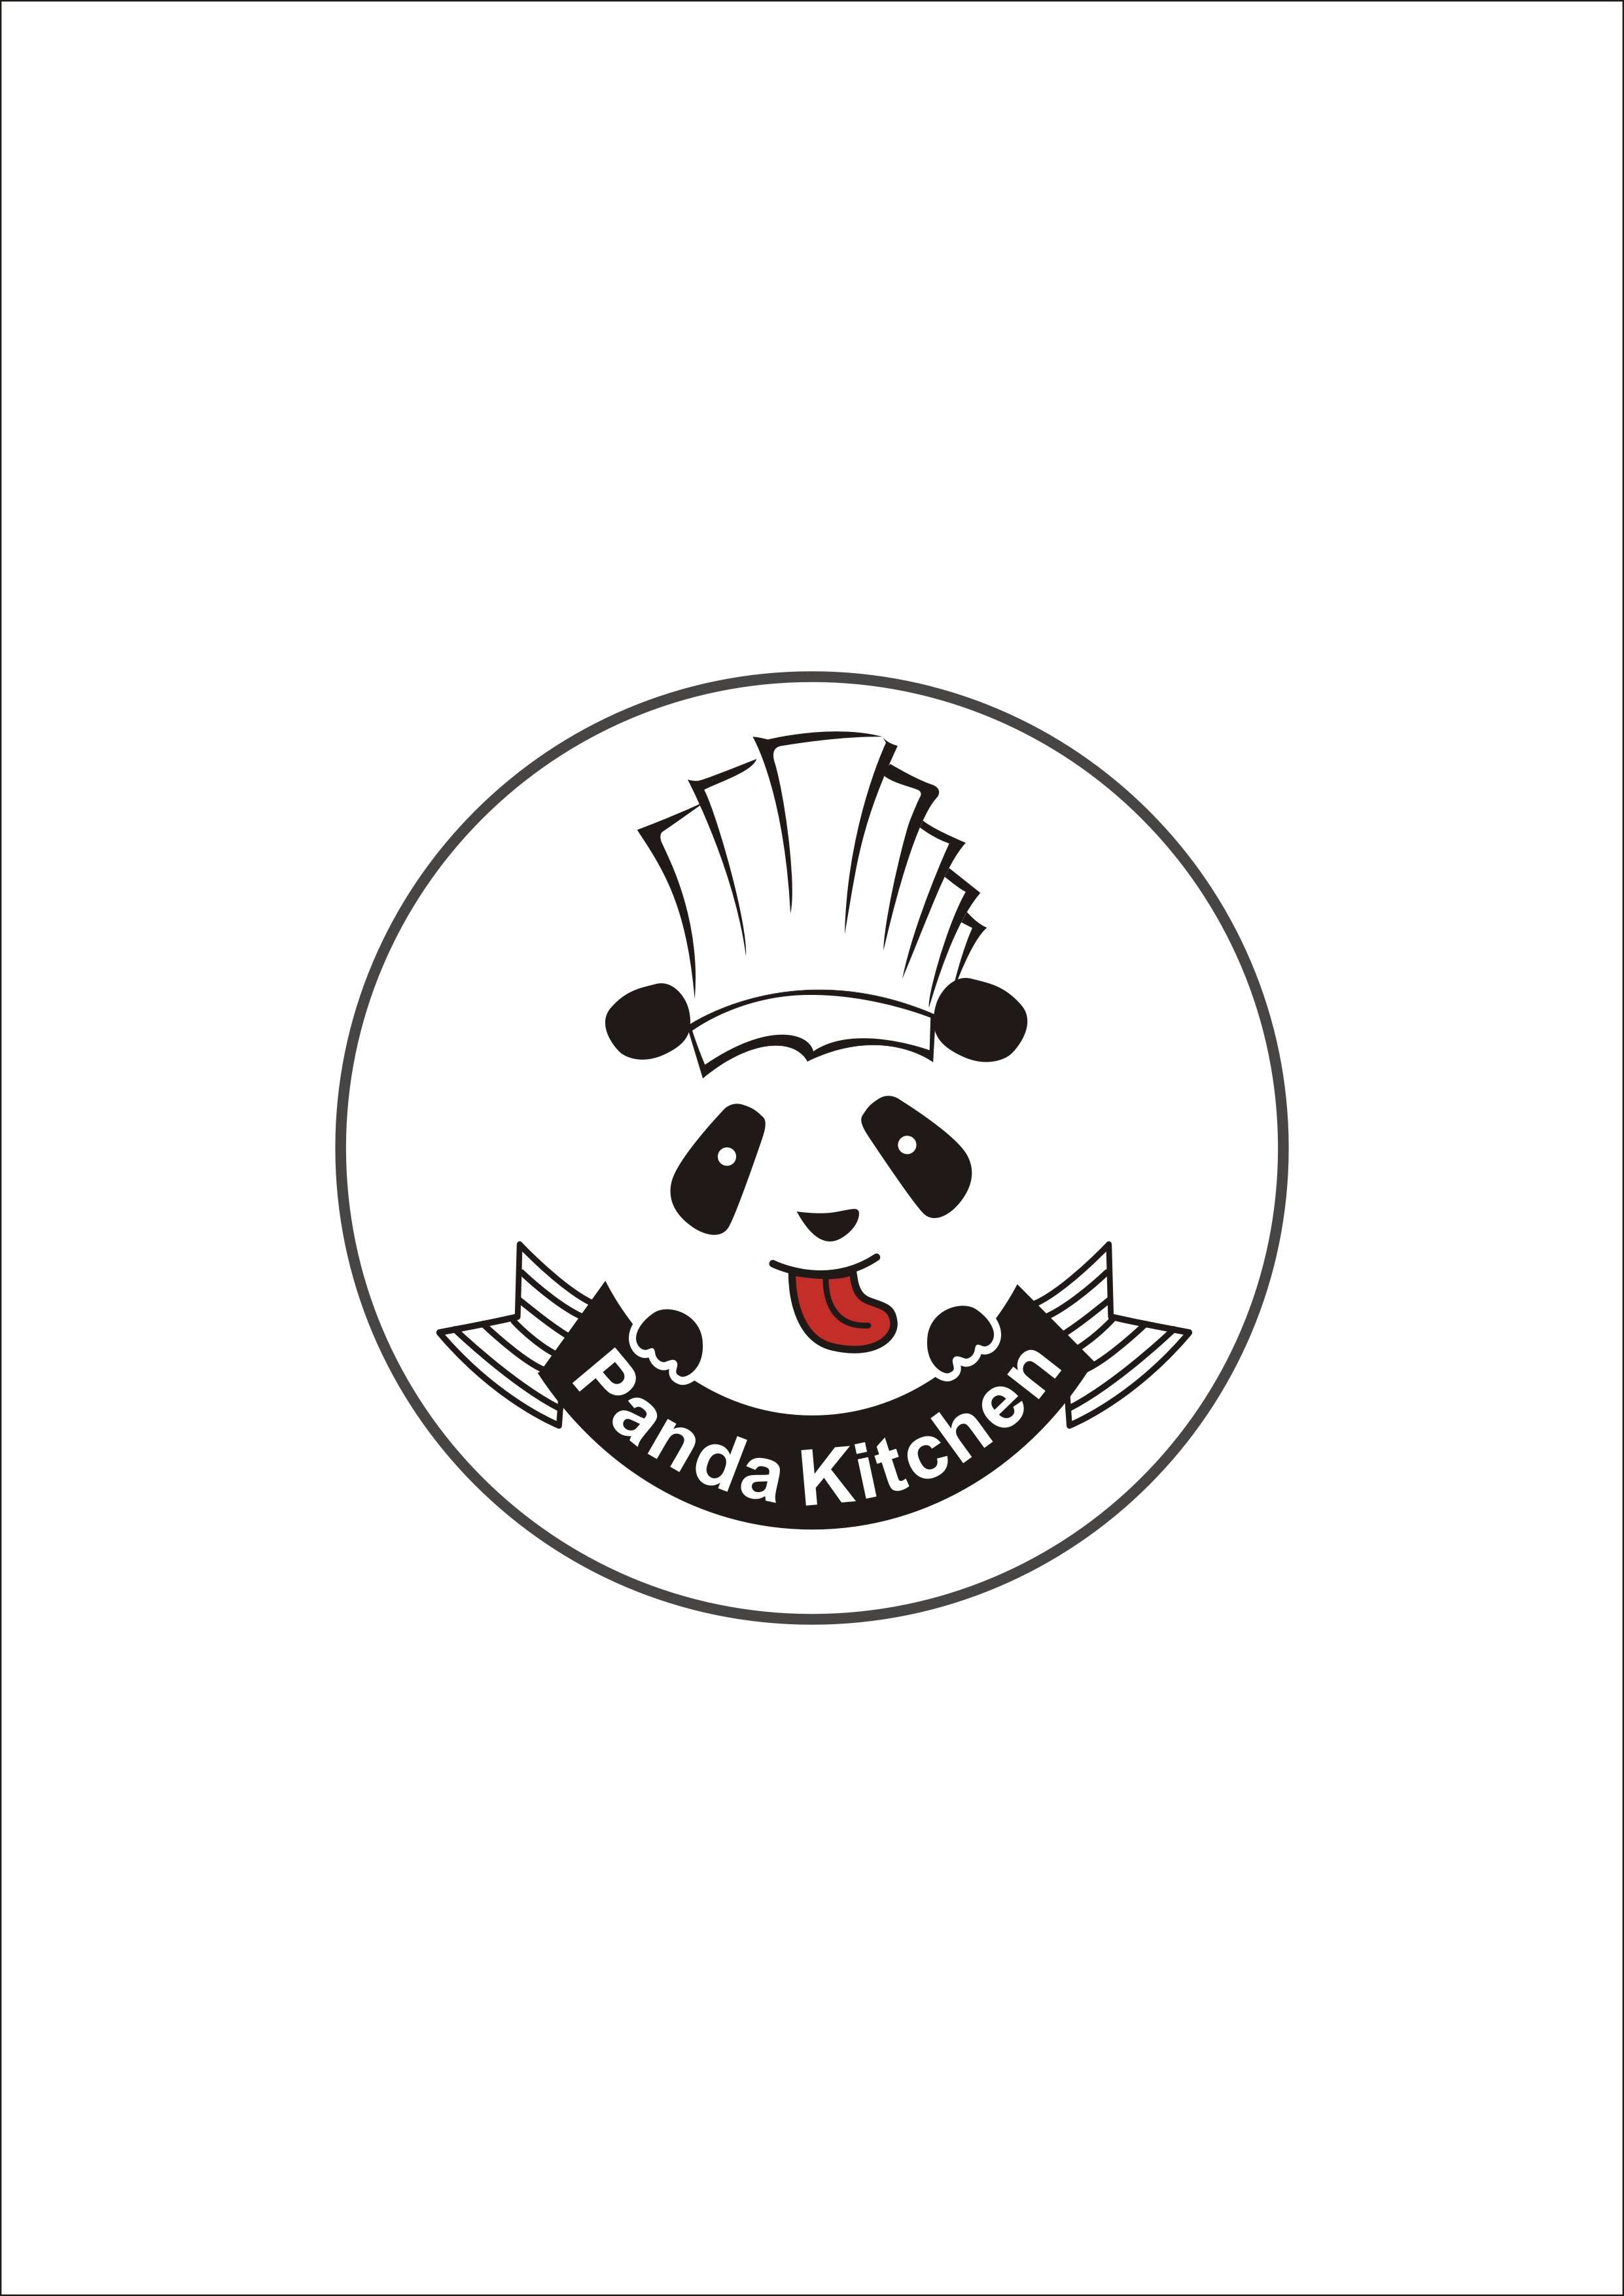 Panda Kitchen Trade Mark.jpg